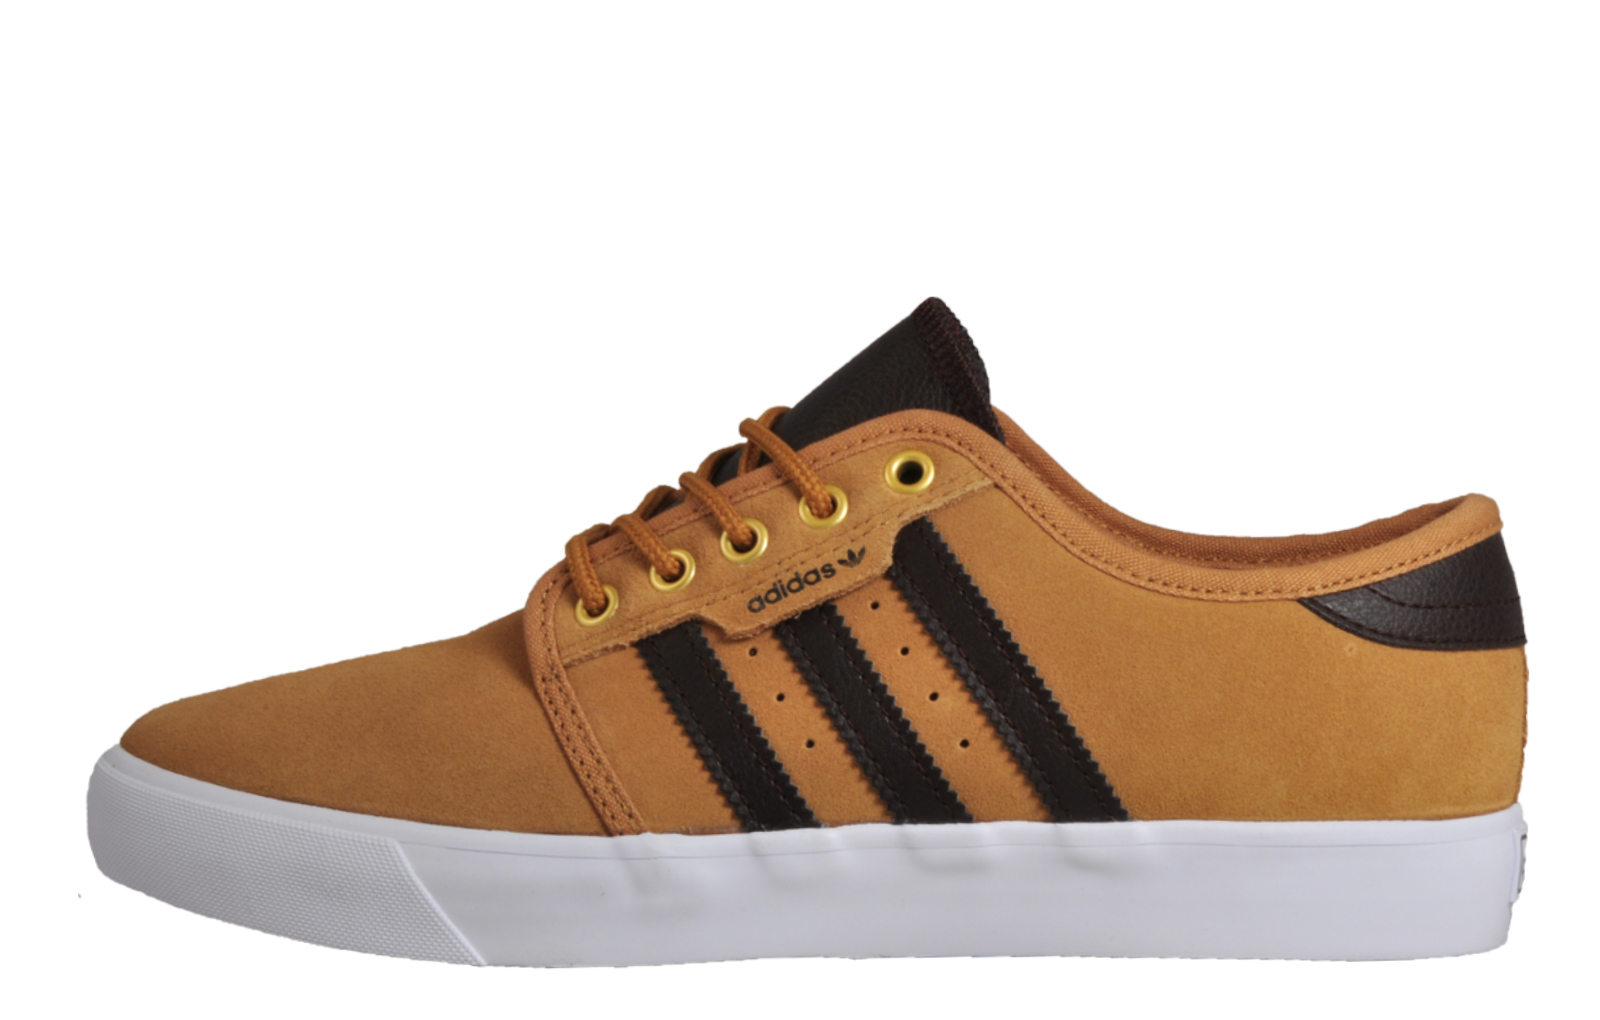 9fda991beea Adidas Originals Seeley Junior Suede Leather Casual Retro Trainers UK 3.5  Only